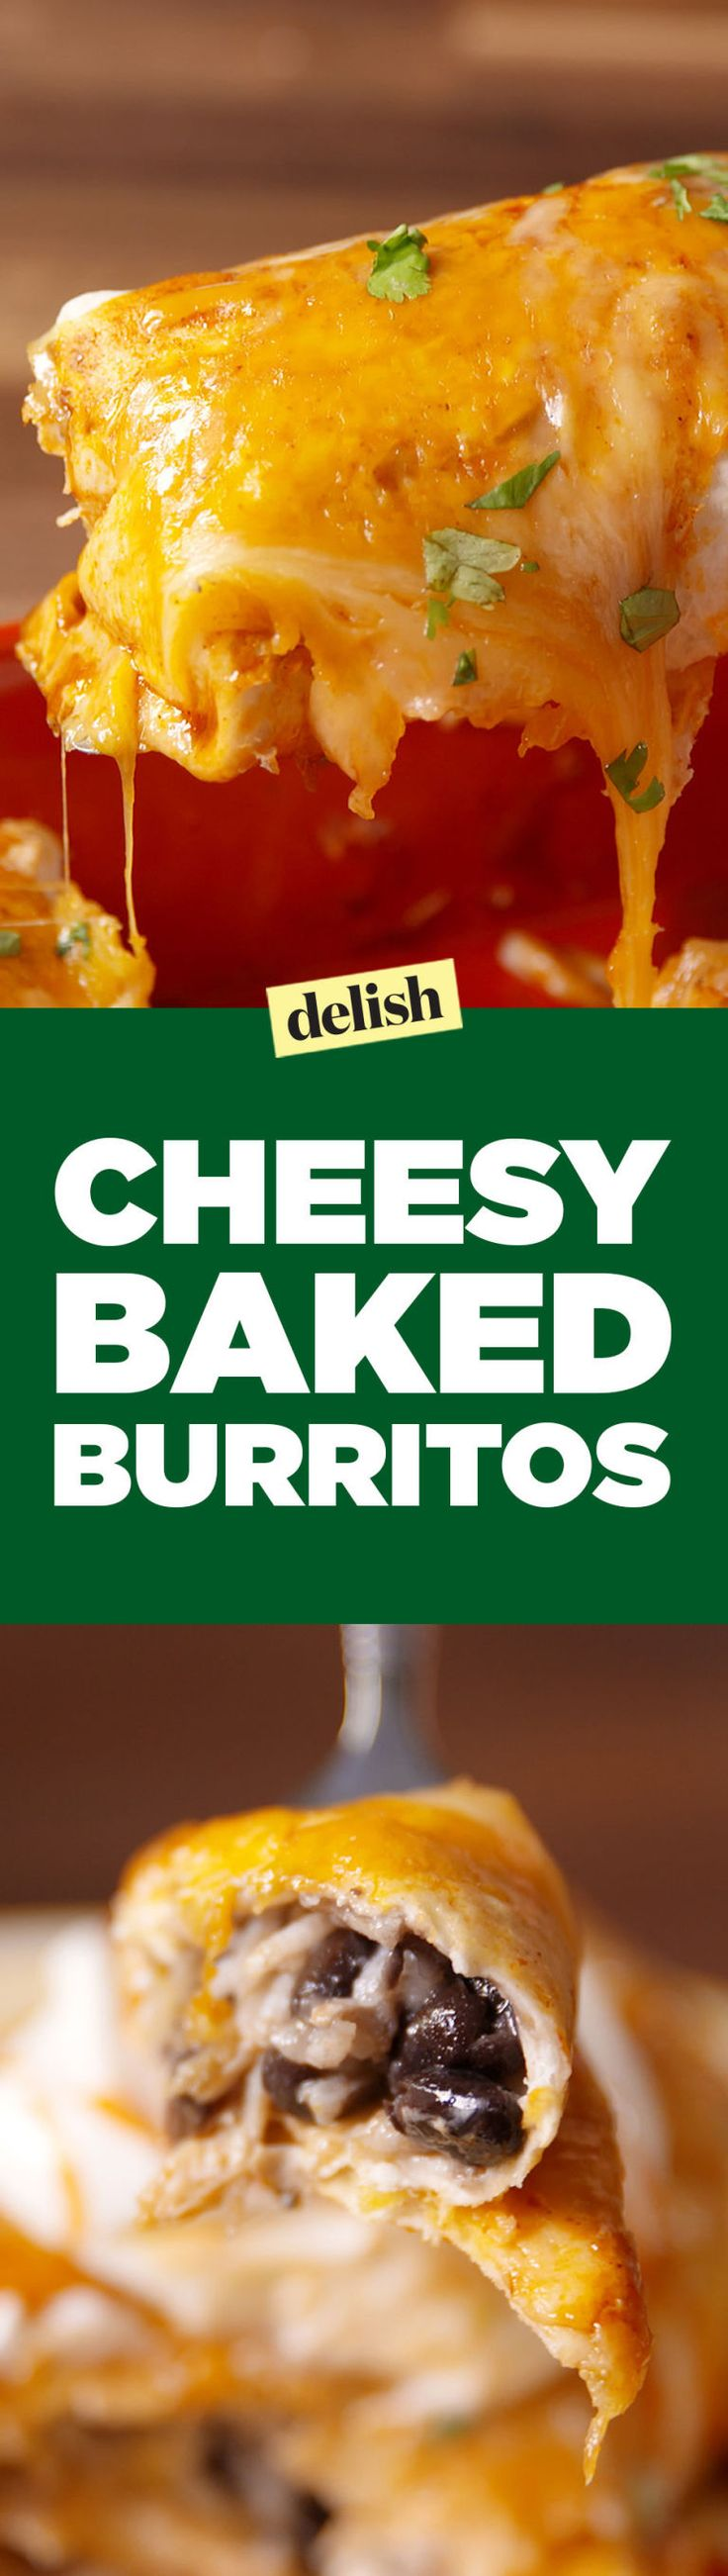 This Cheesy Baked Burrito Will Ruin All Other Burritos For You